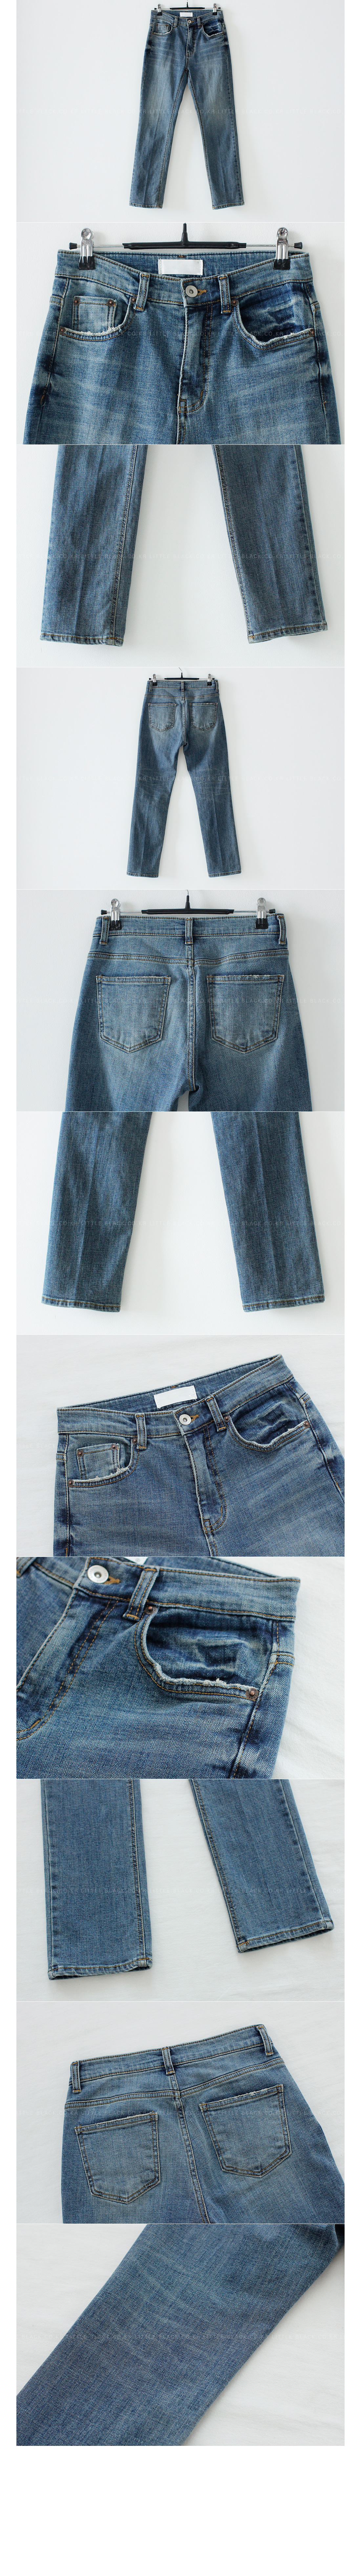 Straight Leg Mid Wash Jeans|